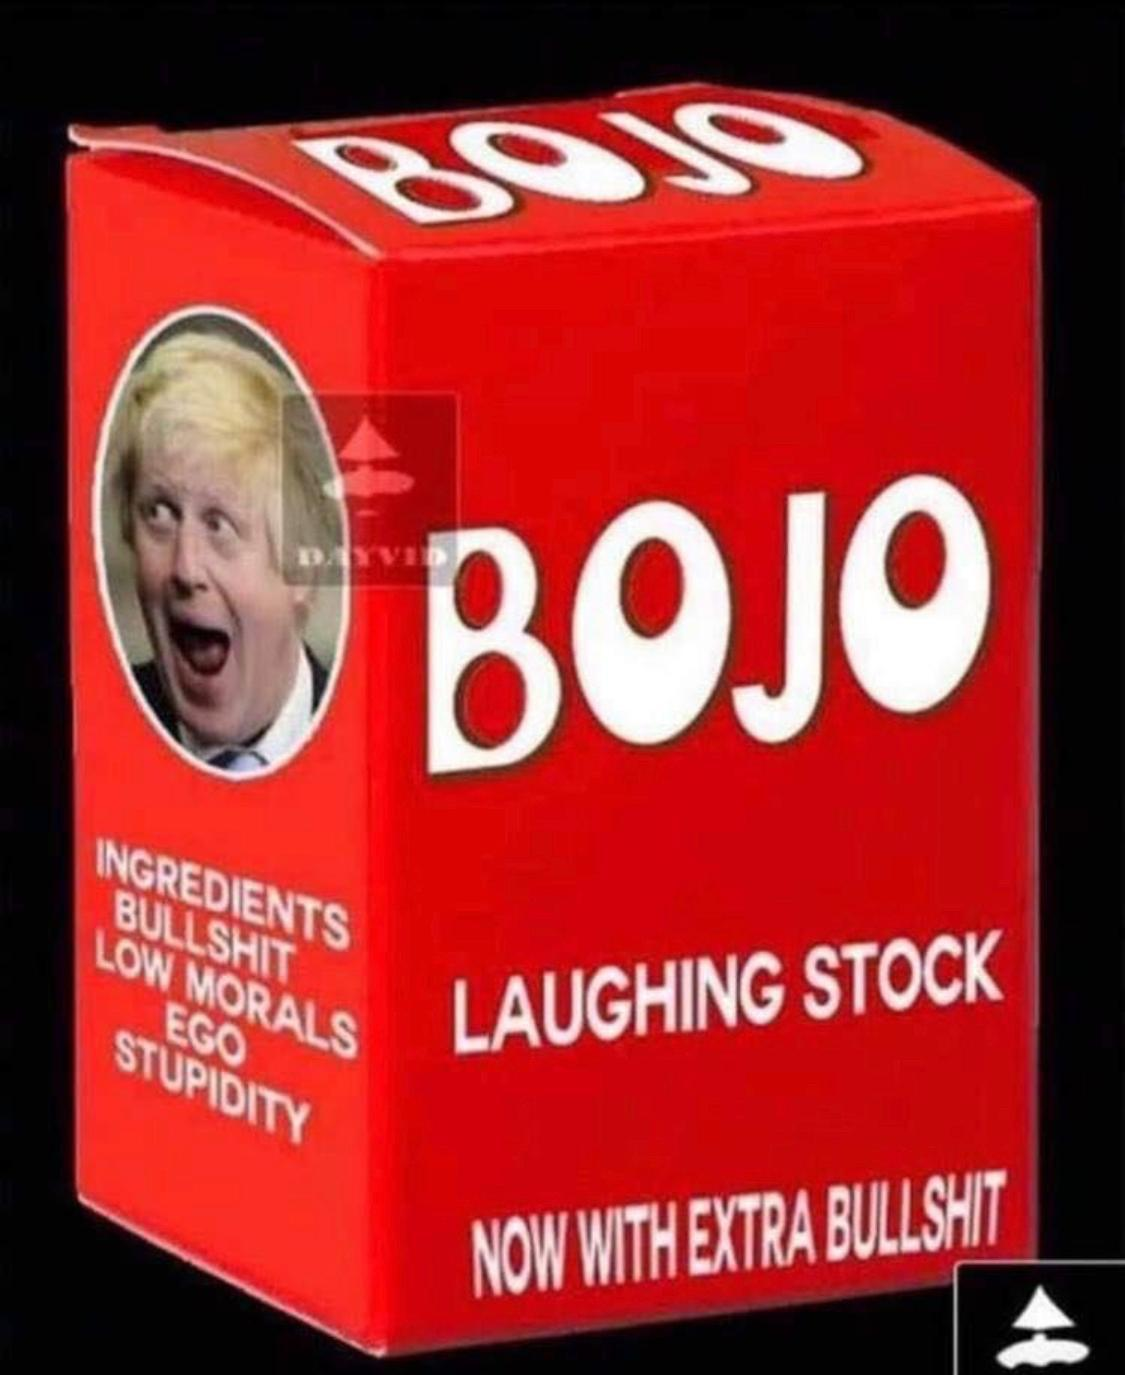 Meanwhile in the uk a new product hits the shelves! 😀